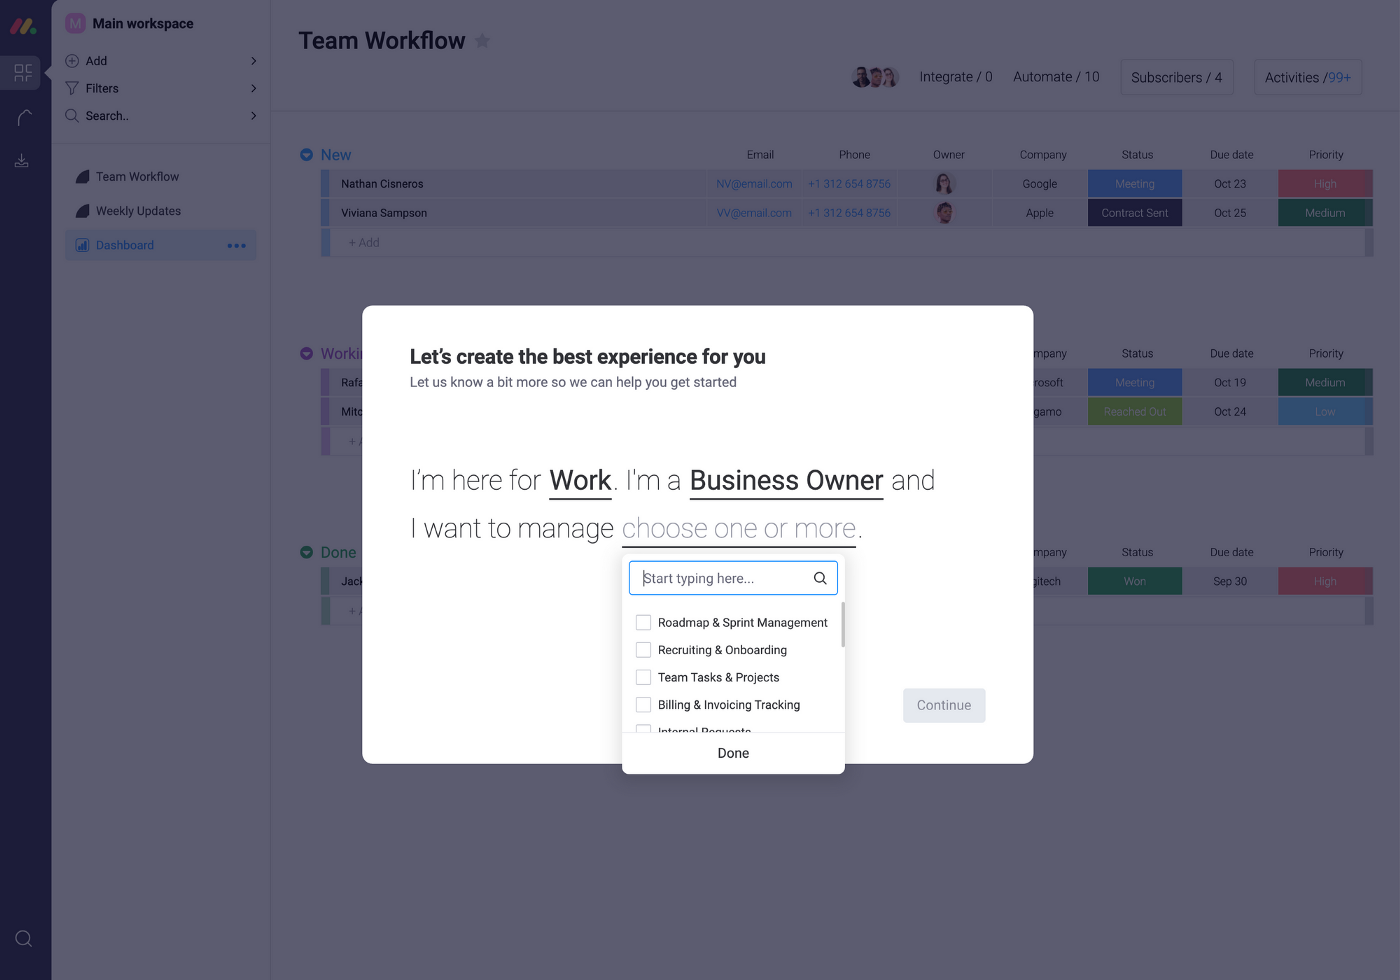 want to manage step in Asana saas micro-survey template